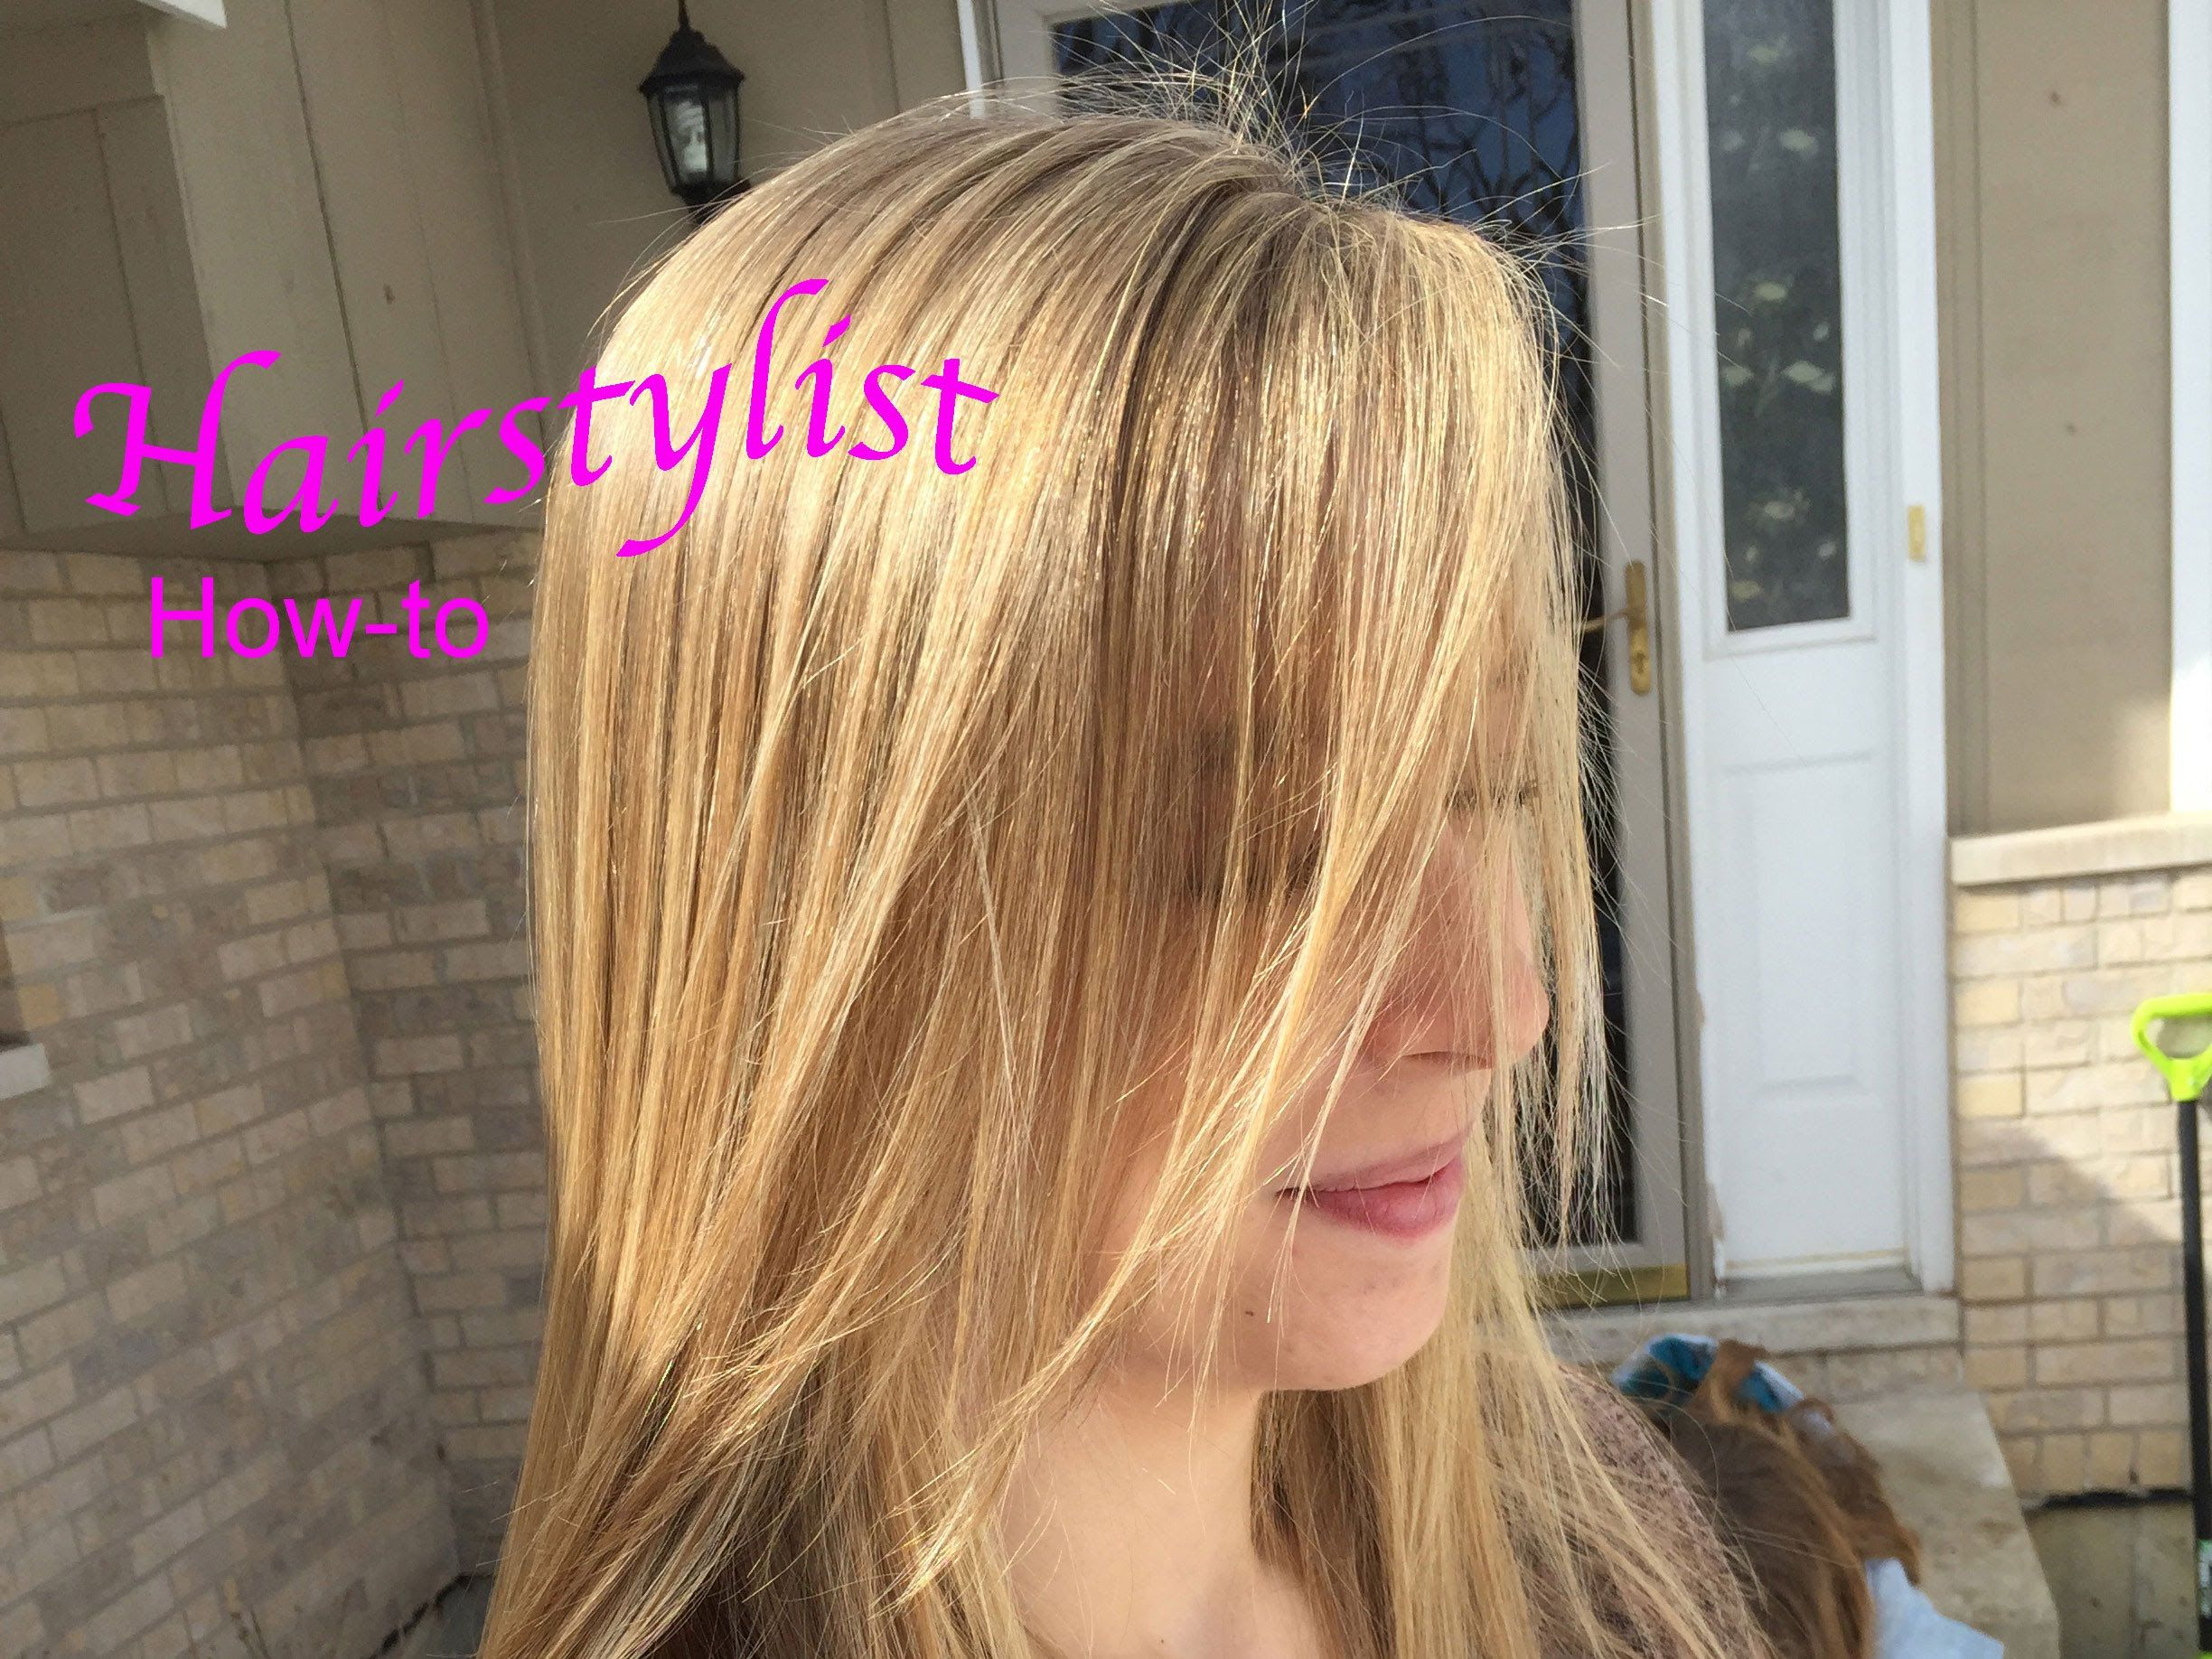 How To Do Babylights Hair Tutorial Natural Looking Highlights Hair Tutorial Babylights Hair Hair Highlights